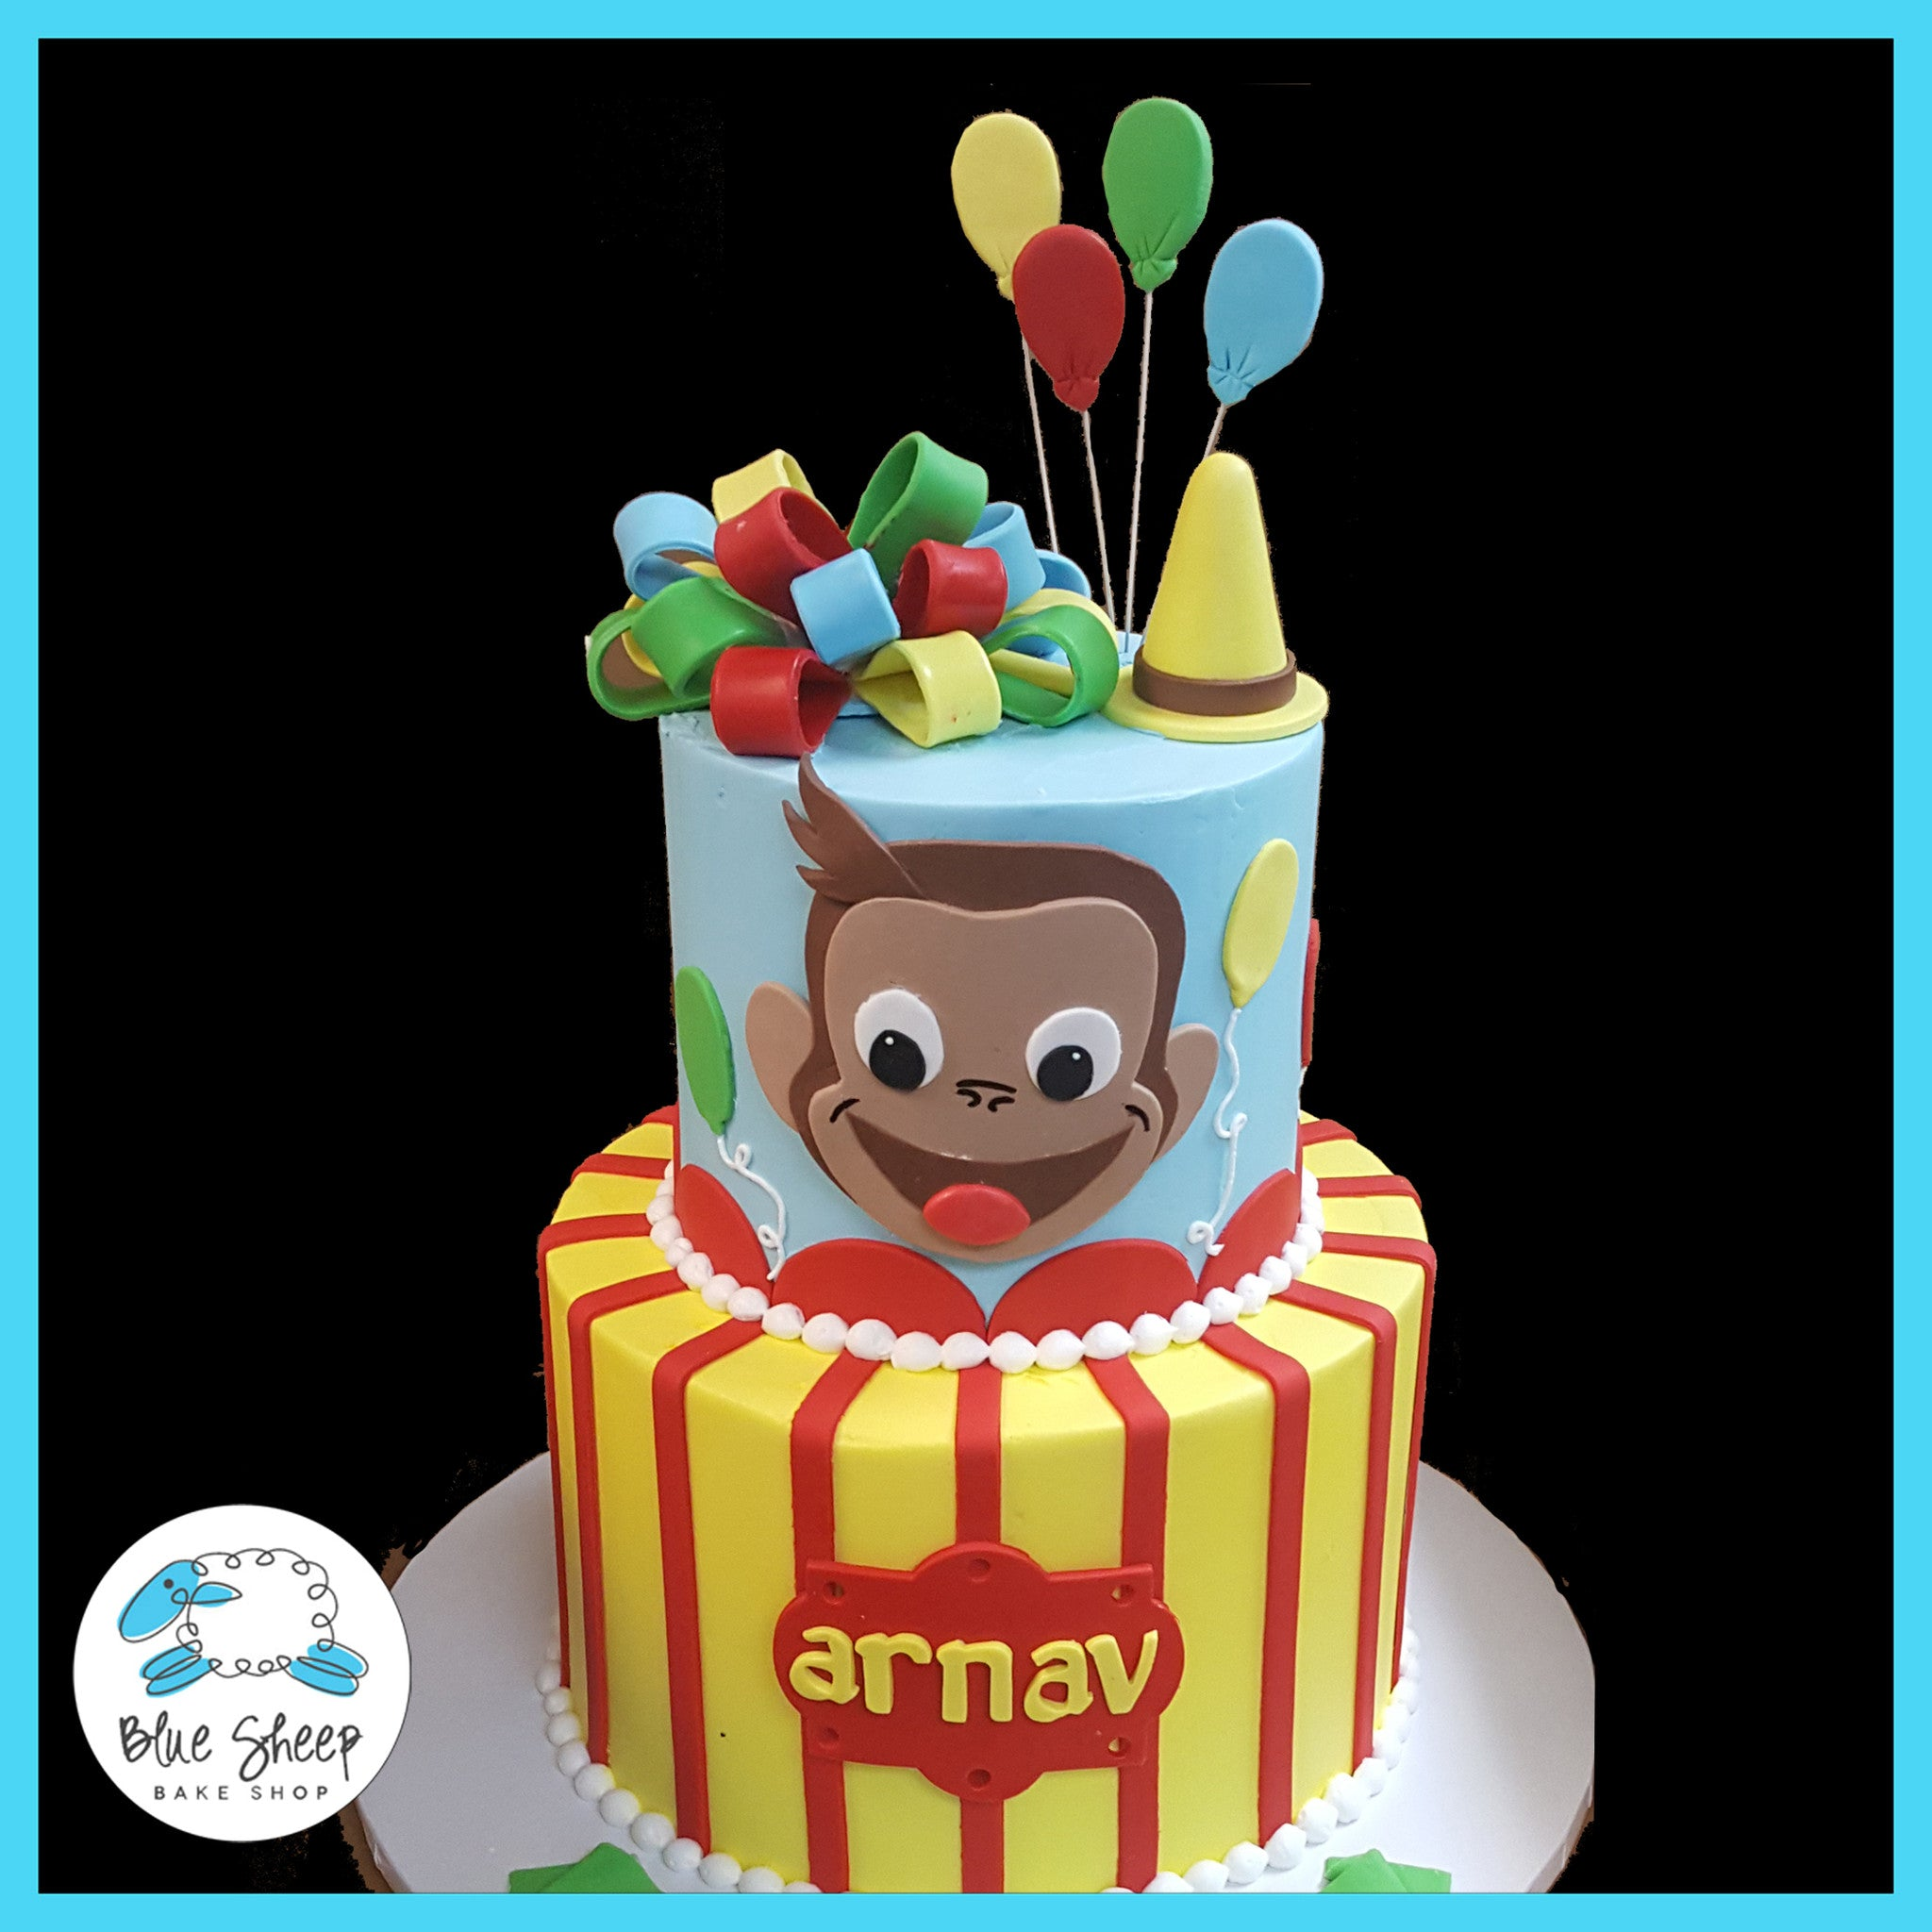 Phenomenal Curious George Birthday Cake Blue Sheep Bake Shop Funny Birthday Cards Online Sheoxdamsfinfo